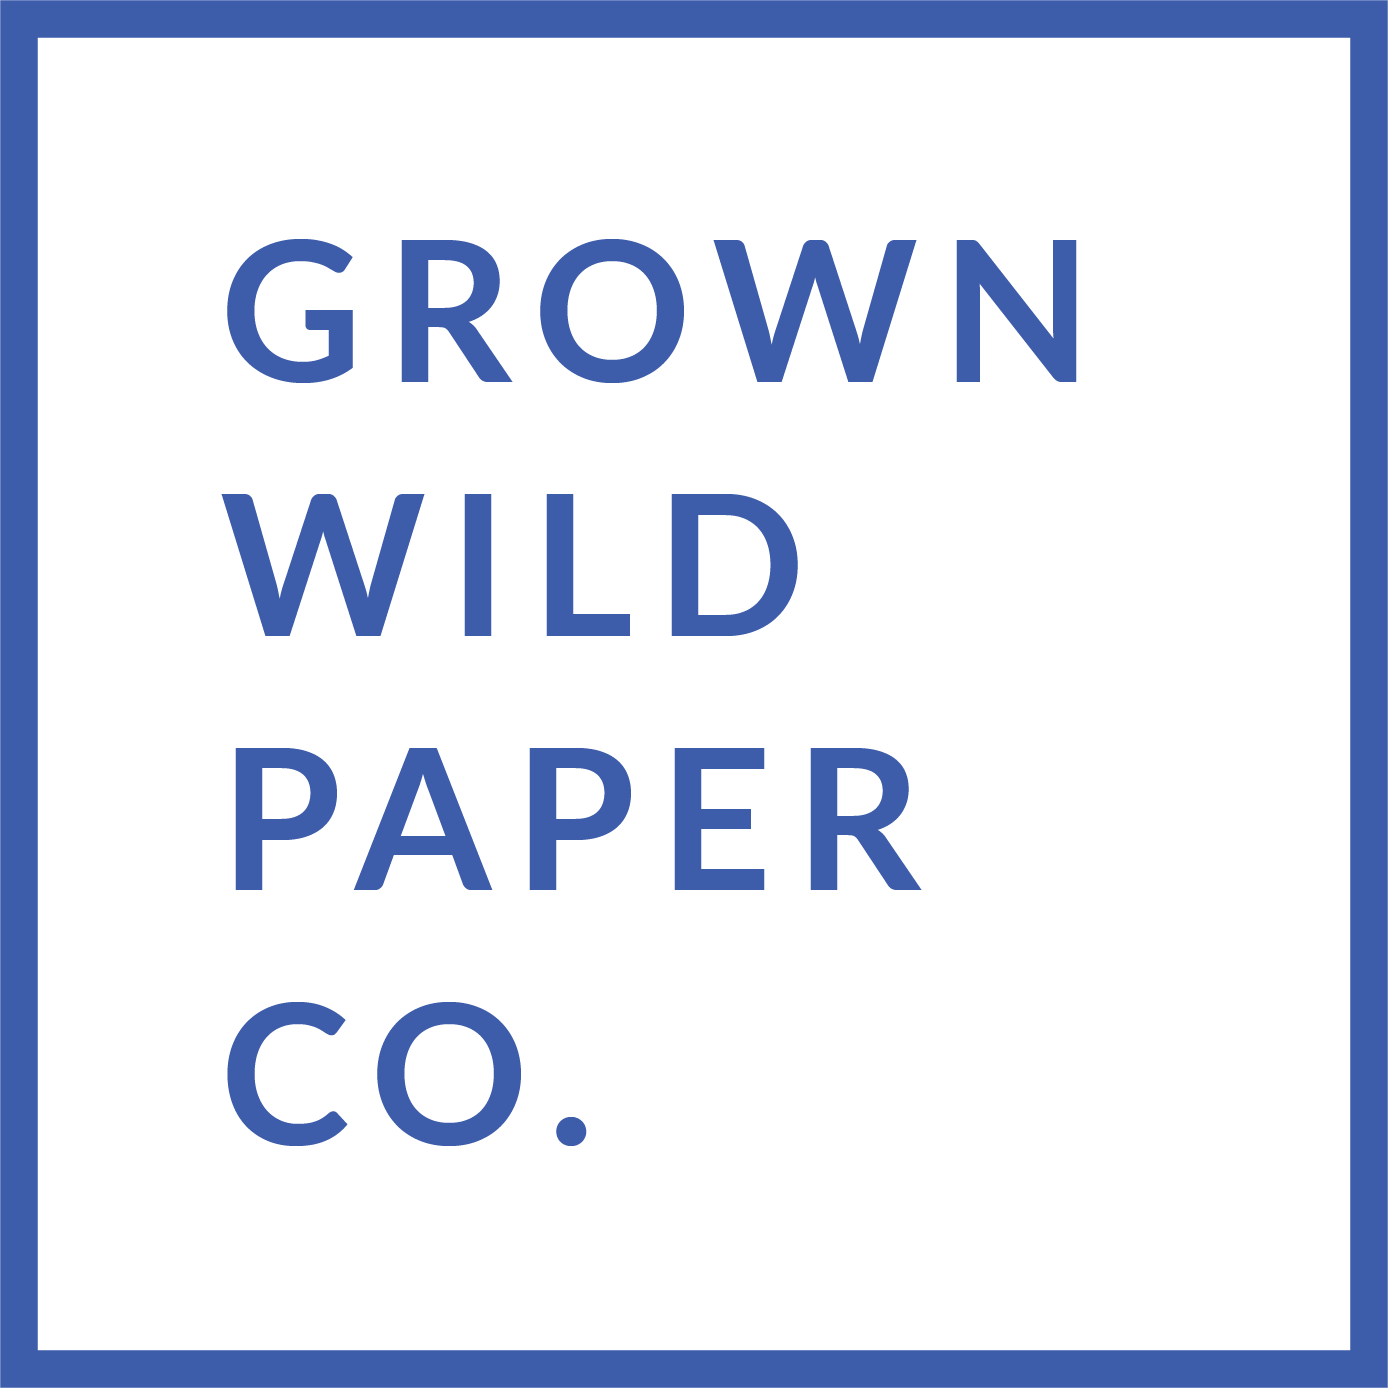 Grown Wild Paper Co.